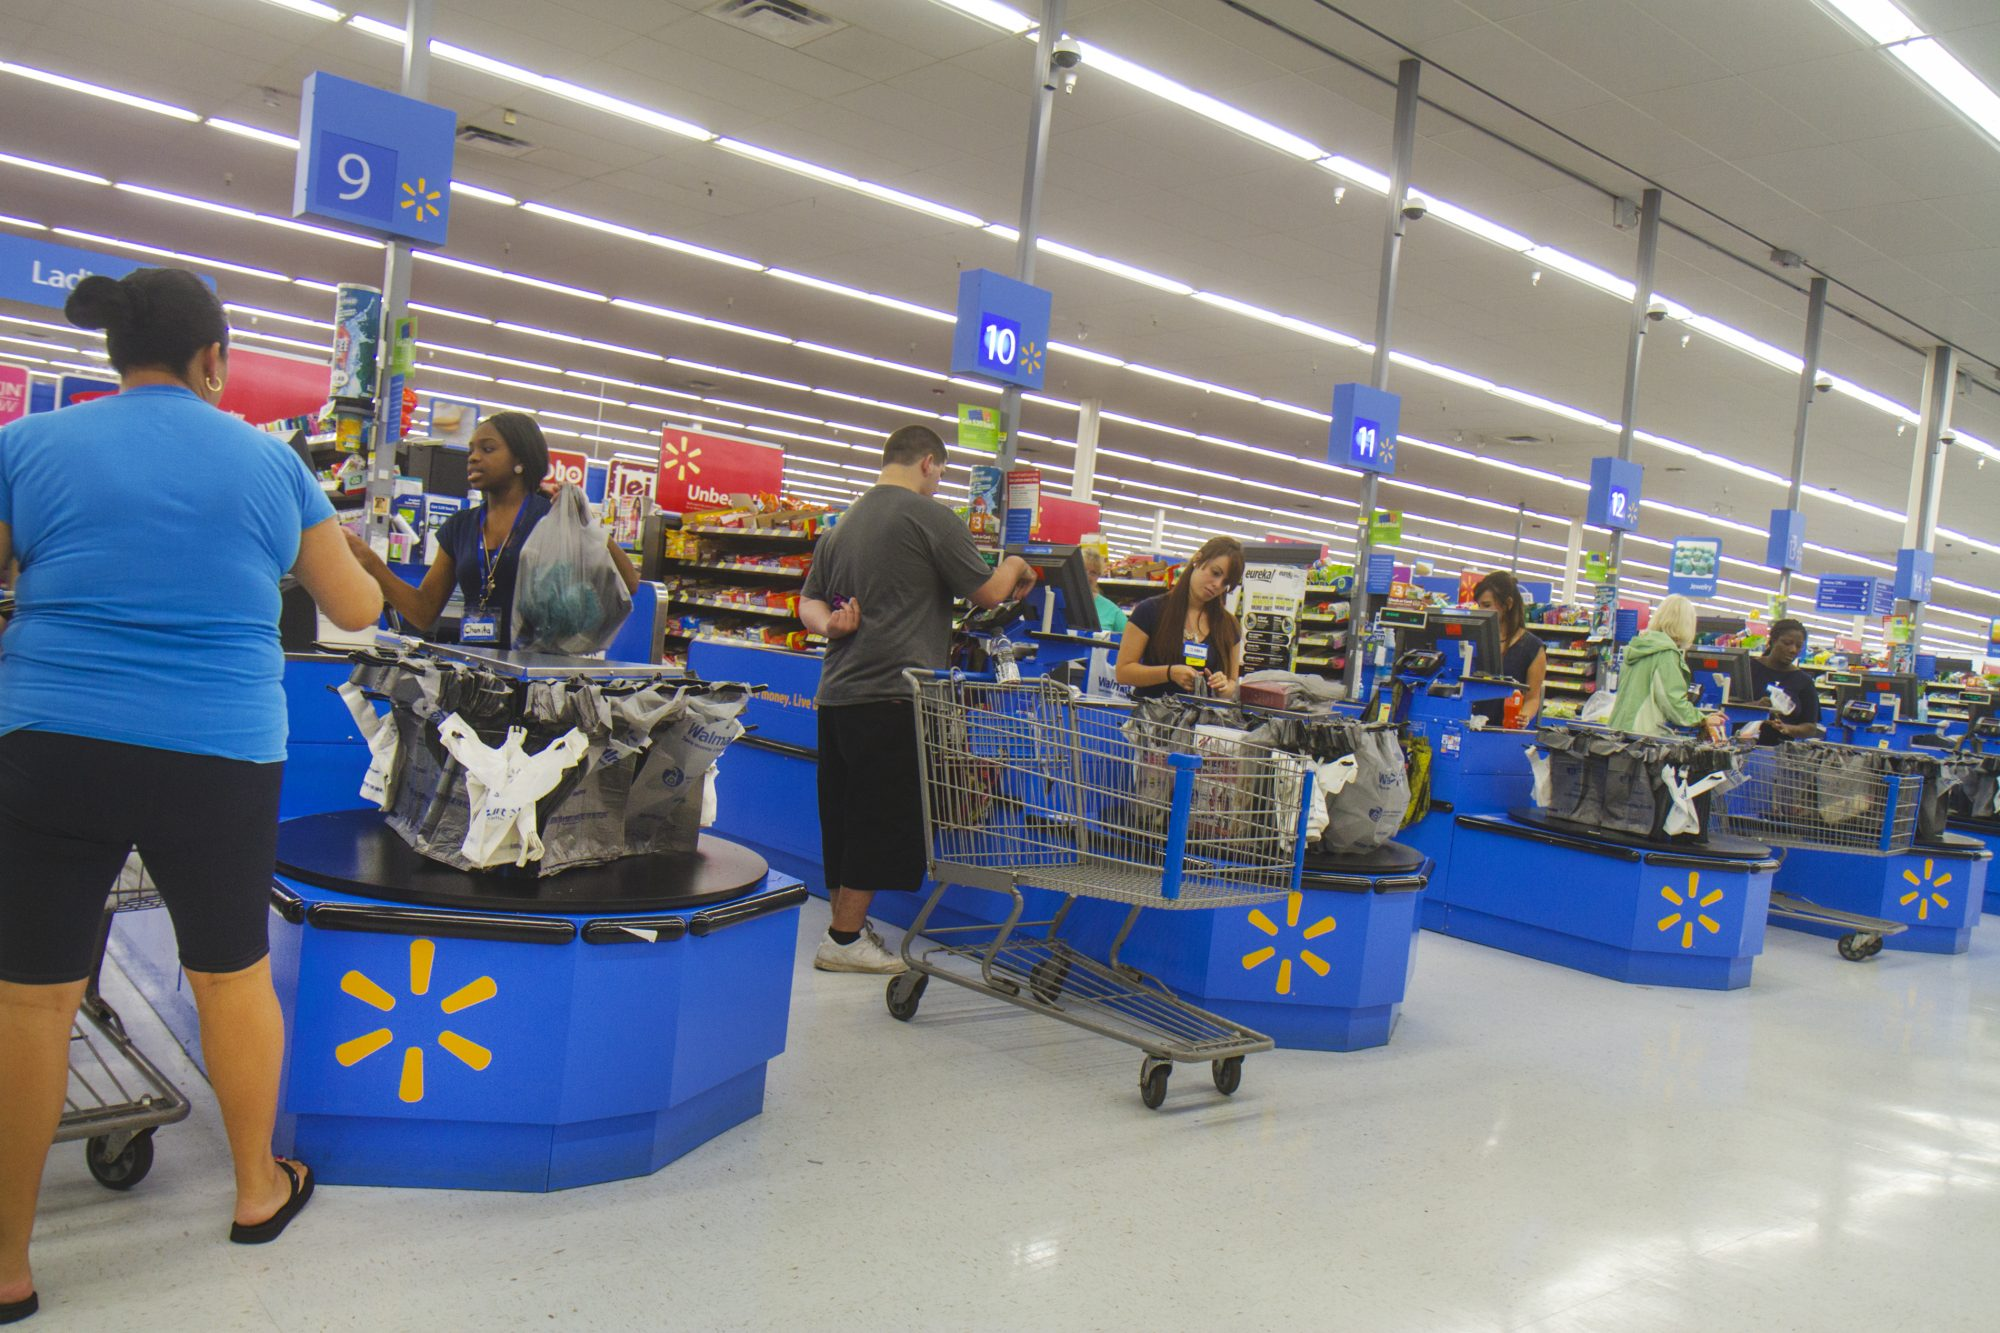 The check out inside Walmart.